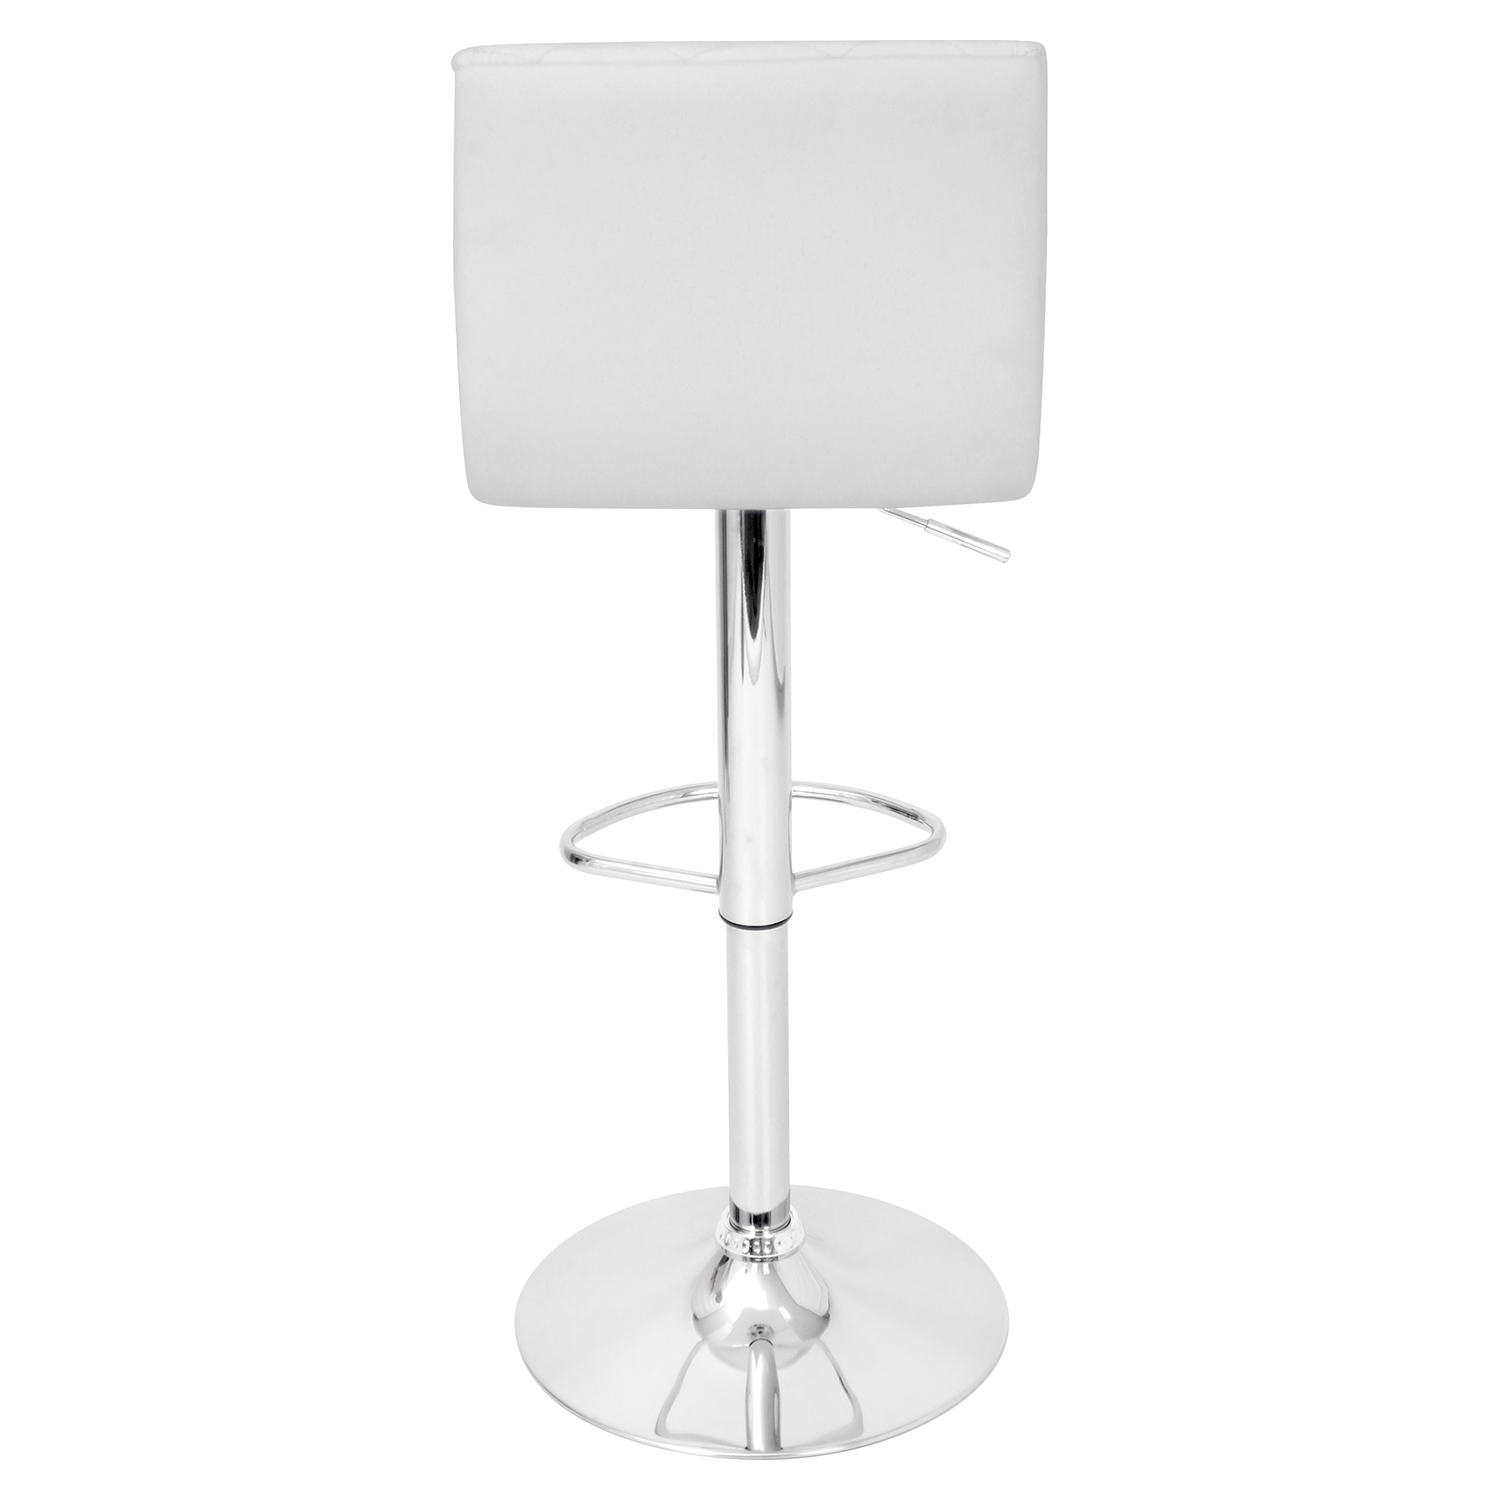 Caviar Height Adjustable Barstool - Swivel, White - LMS-BS-TW-CAV-W